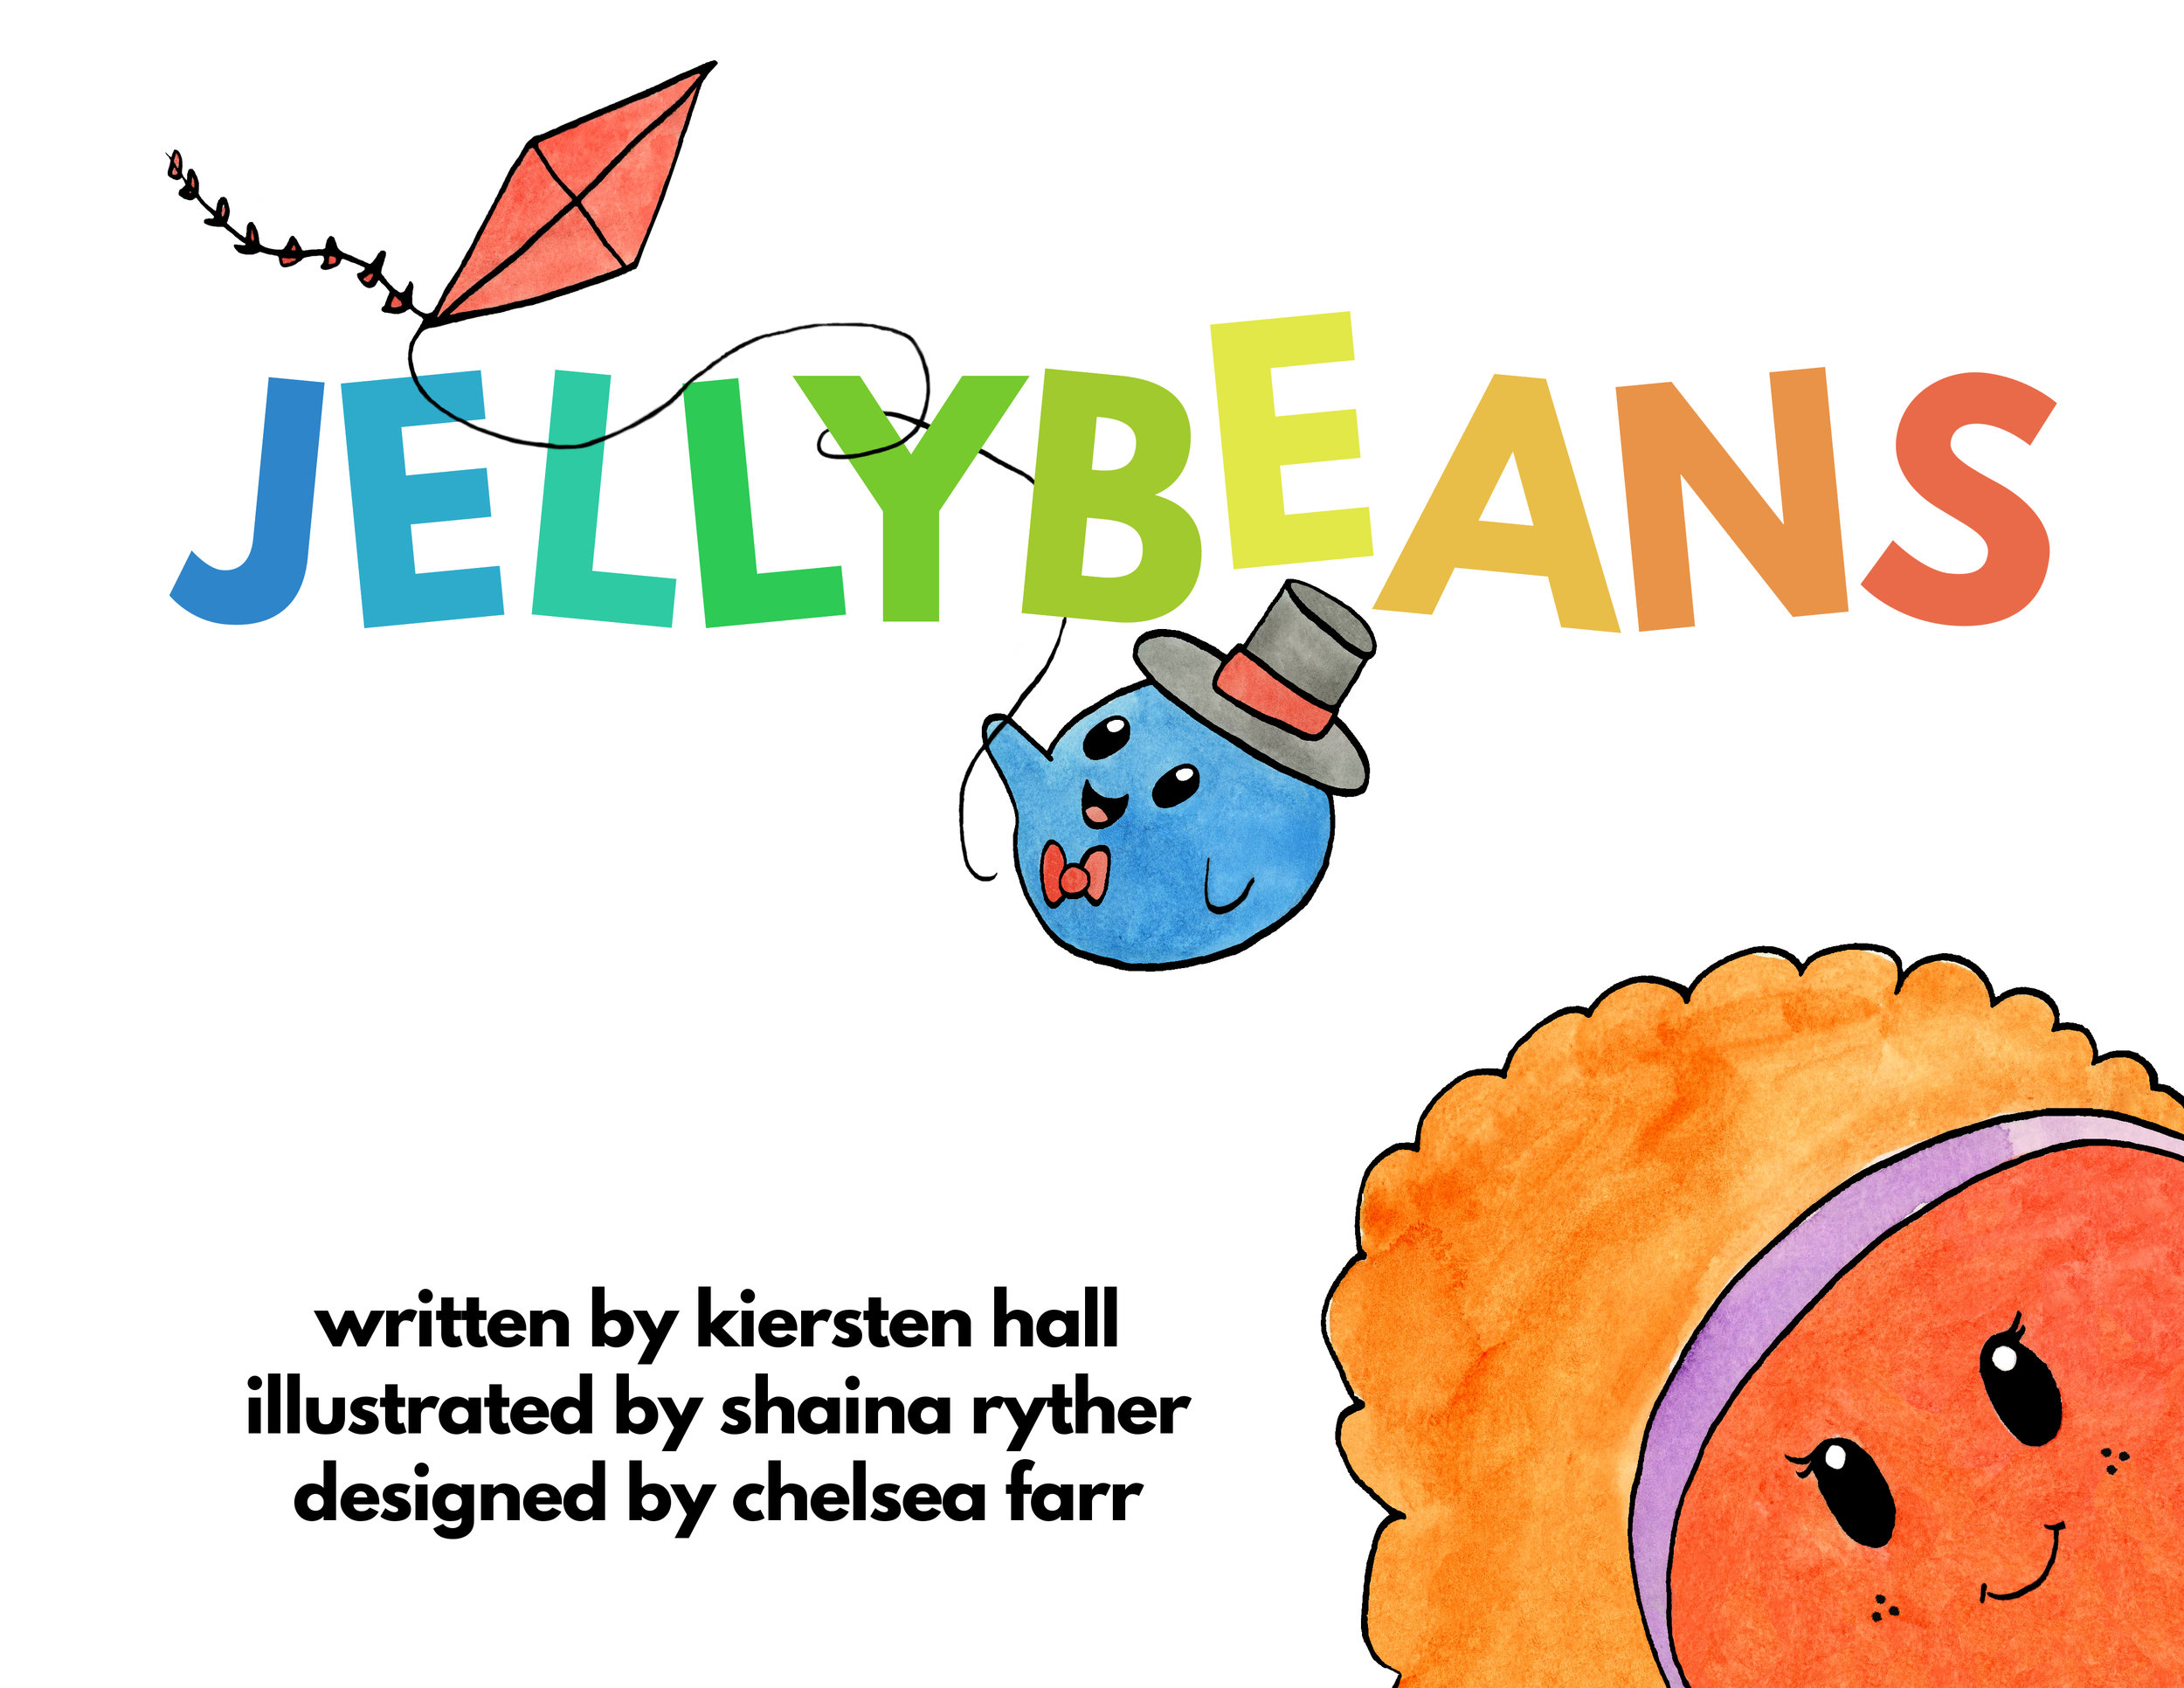 Front Cover for Jellybeans - A thoughtful and sweet children's book to promote kindness and inclusivity.  #thejellybeanbook   #khallbooks   @thejellybeanbook